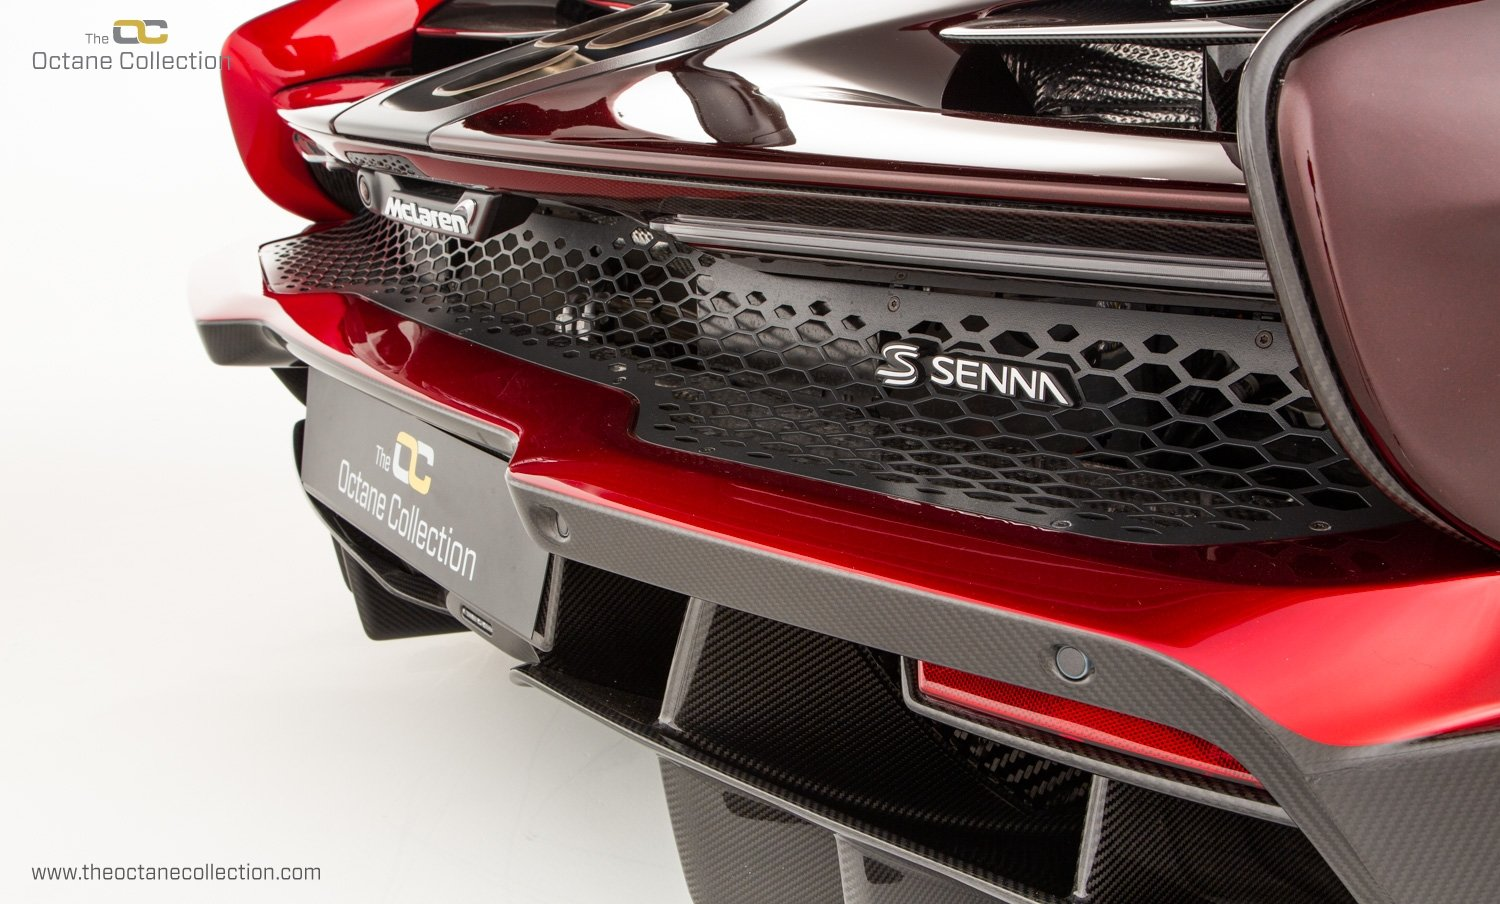 2019 MCLAREN SENNA // 1 OF 1 NERELLO RED // £115K+ MSO OPTIONS For Sale (picture 16 of 27)